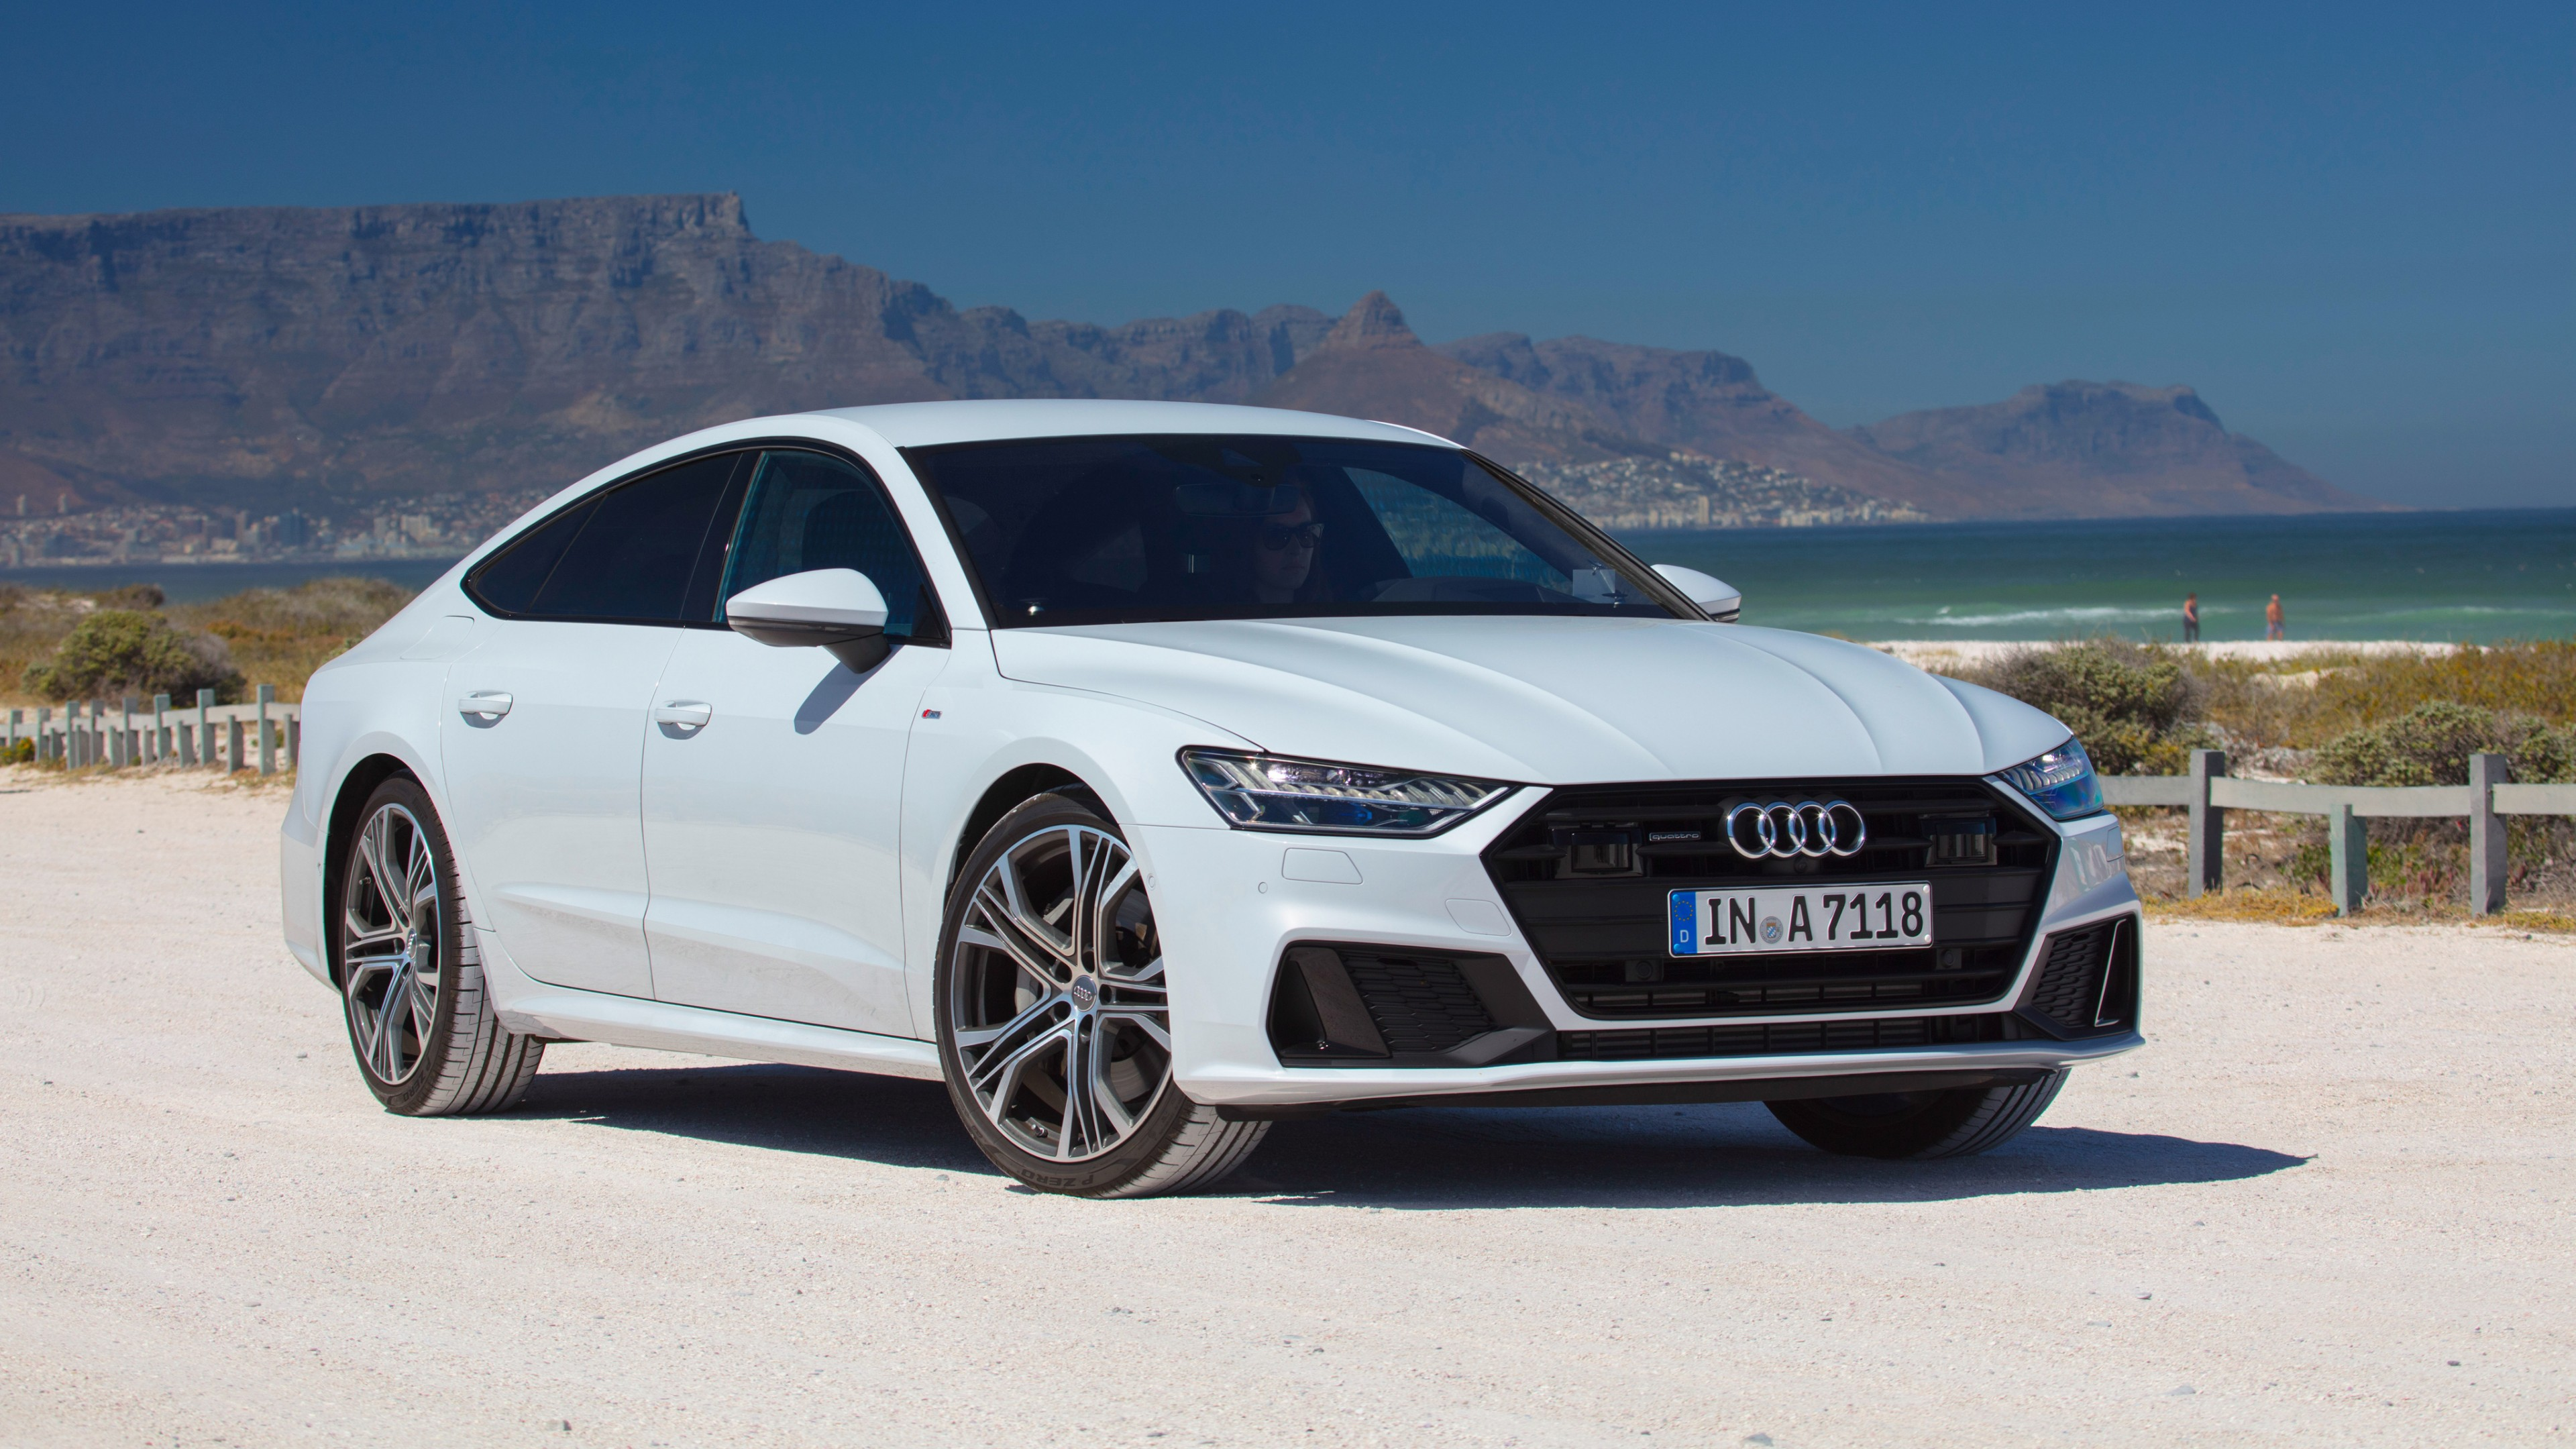 2018 Audi A7 Sportback 55 TFSI Quattro S Line 4K 3 Wallpaper | HD Car Wallpapers | ID #9520